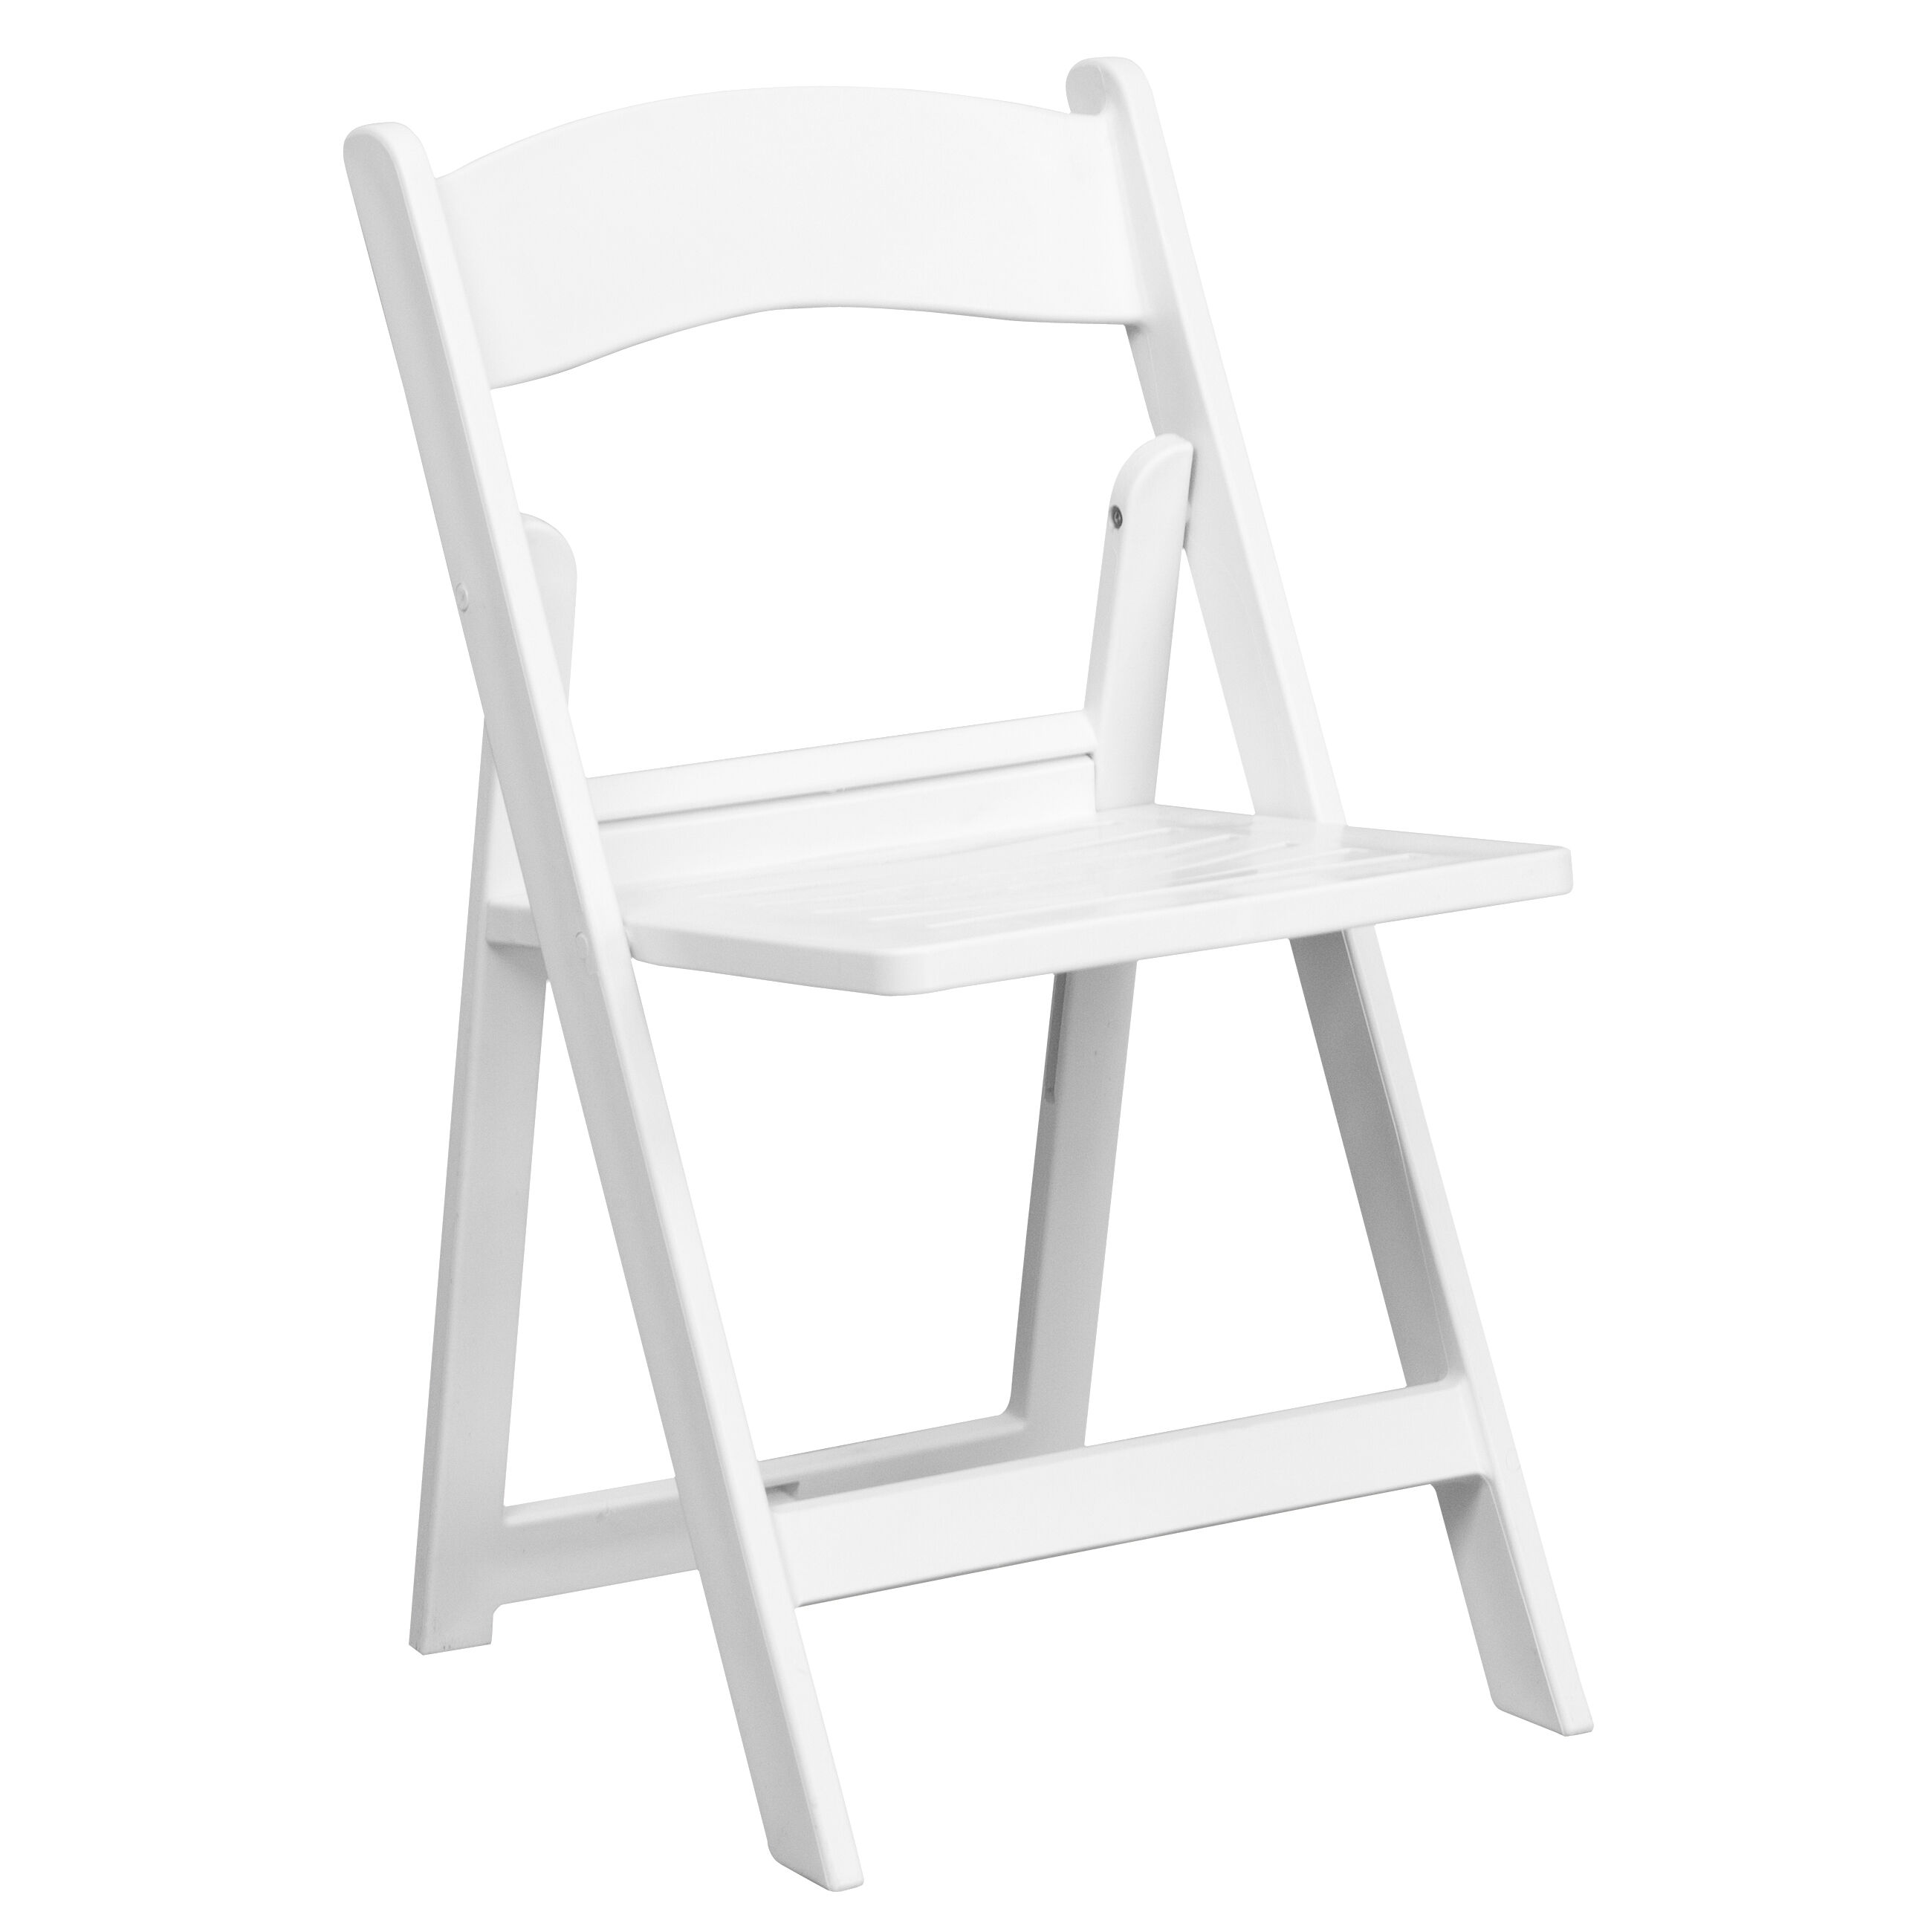 resin folding chairs for sale best ergonomic 2016 foldingchairs4less capacity white chair with slatted seat